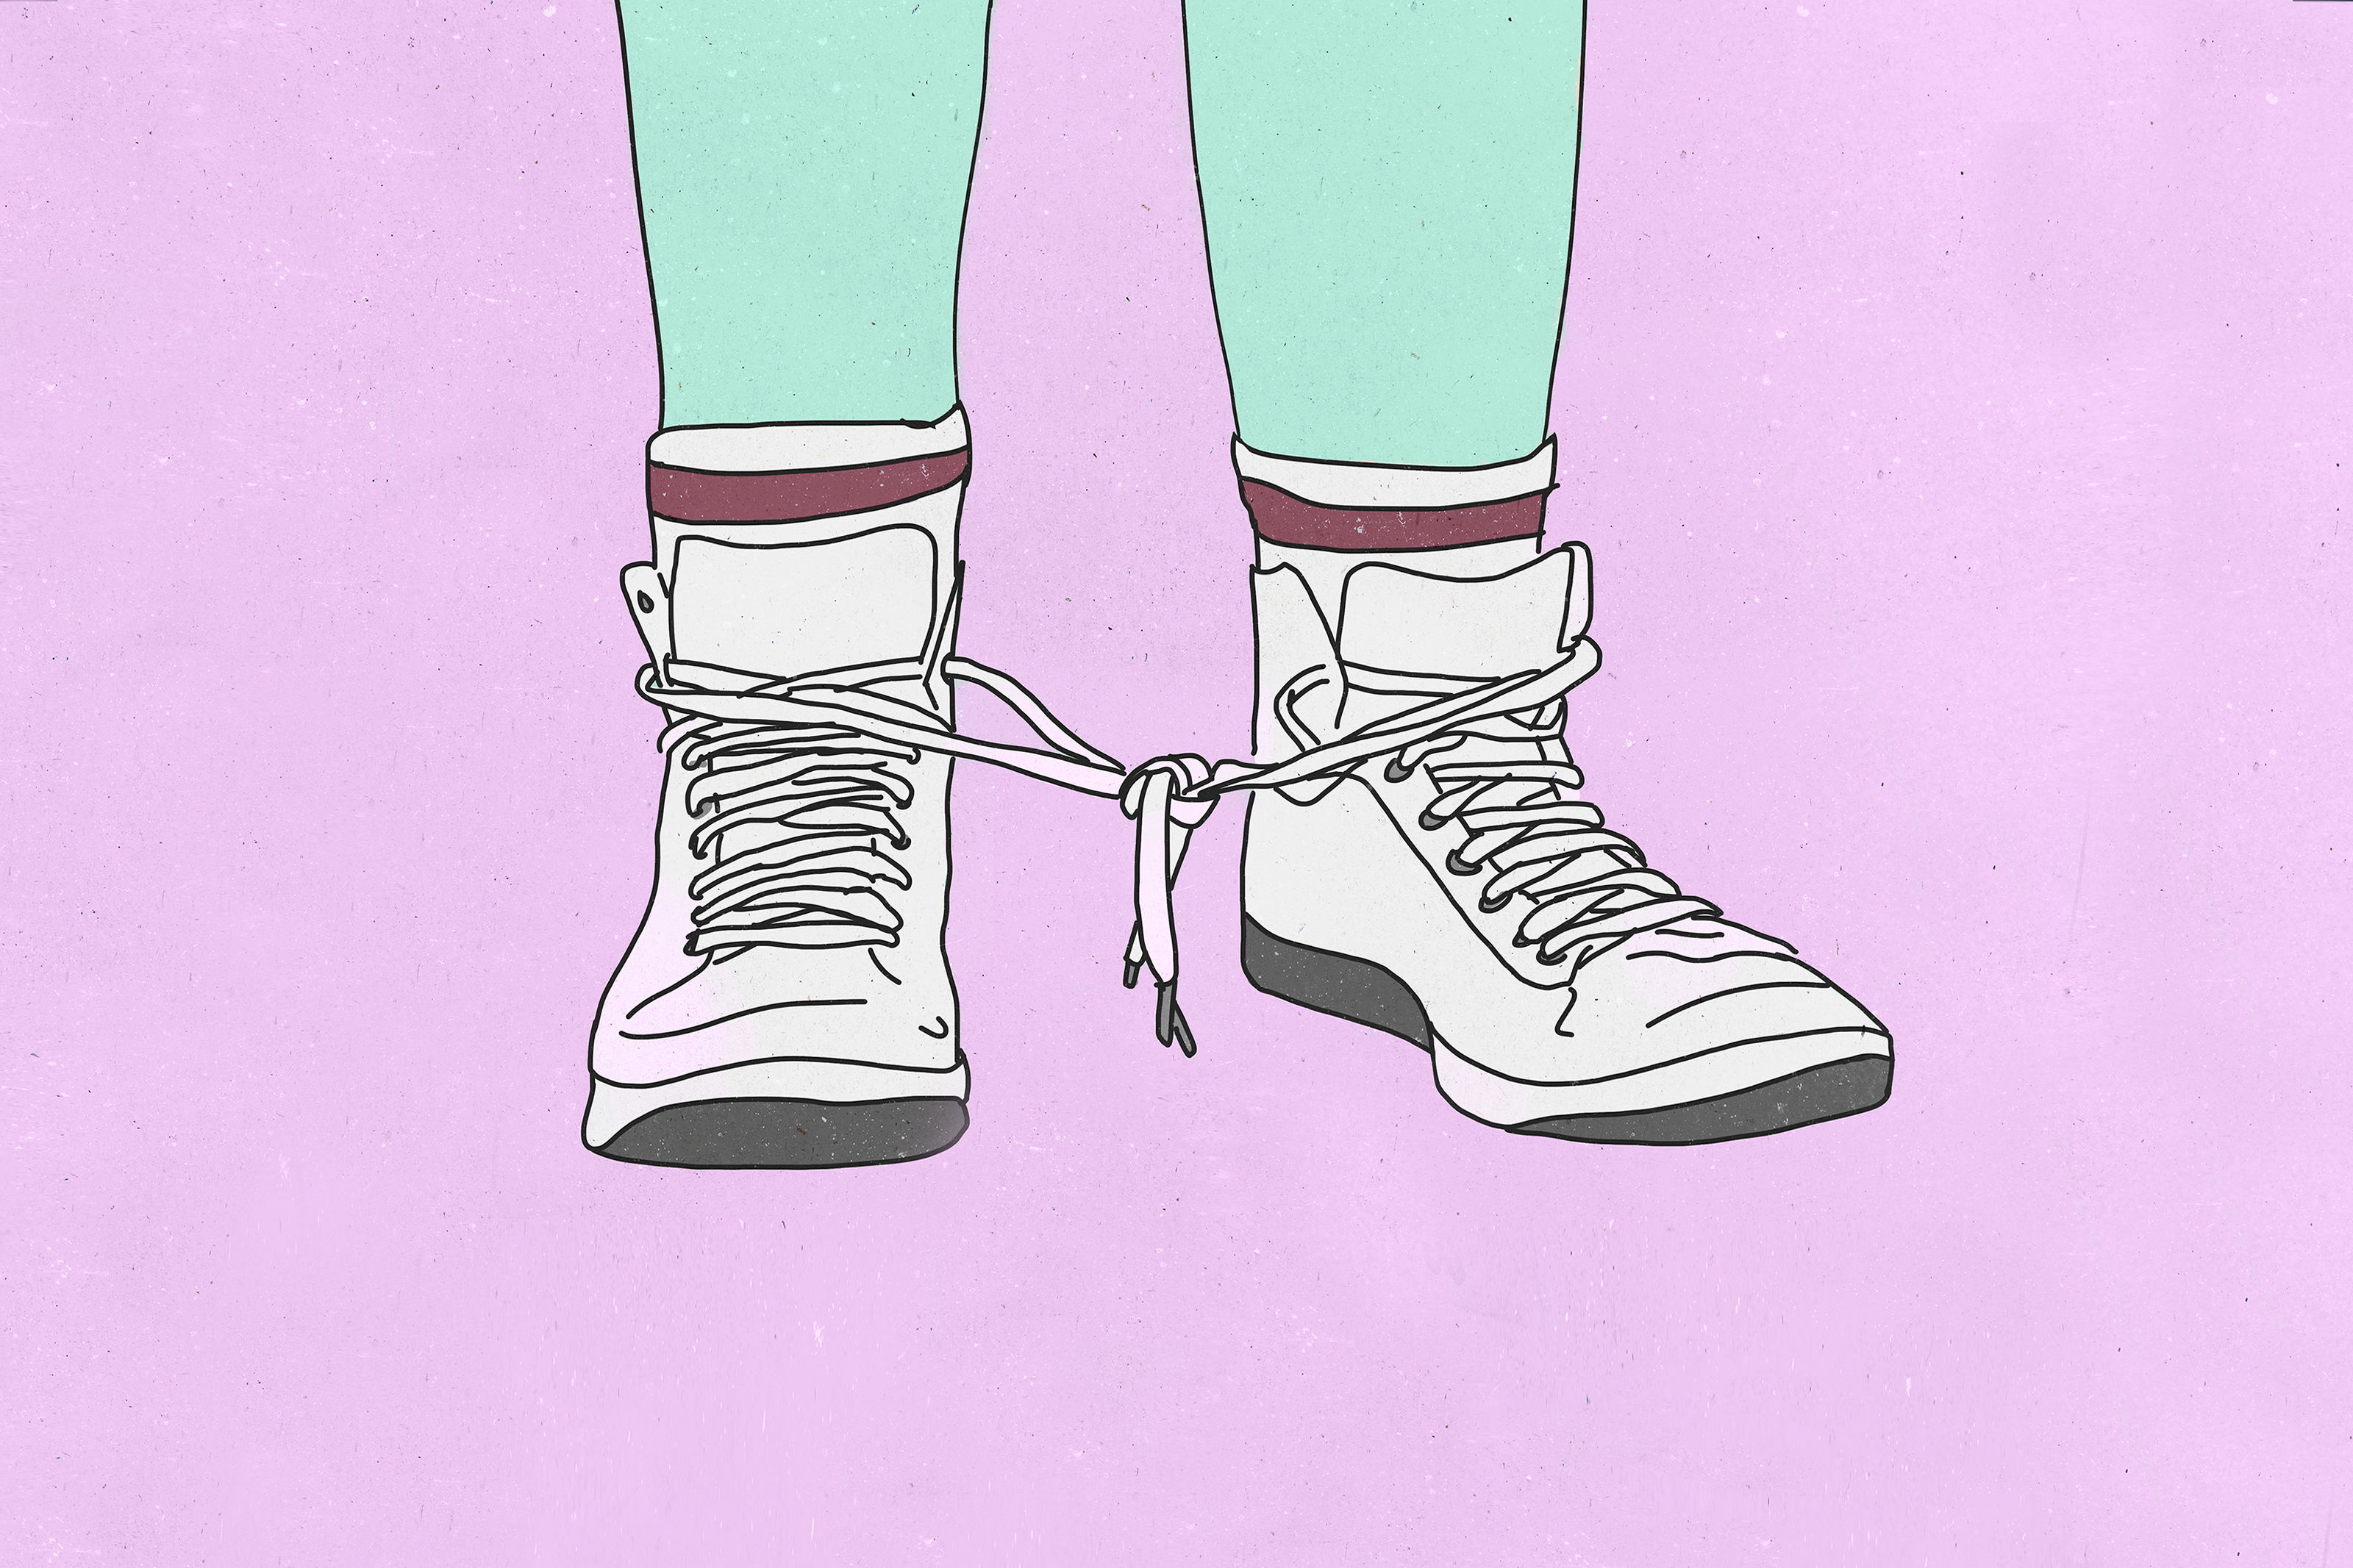 Illustration of tennis shoes with tied shoelaces in front